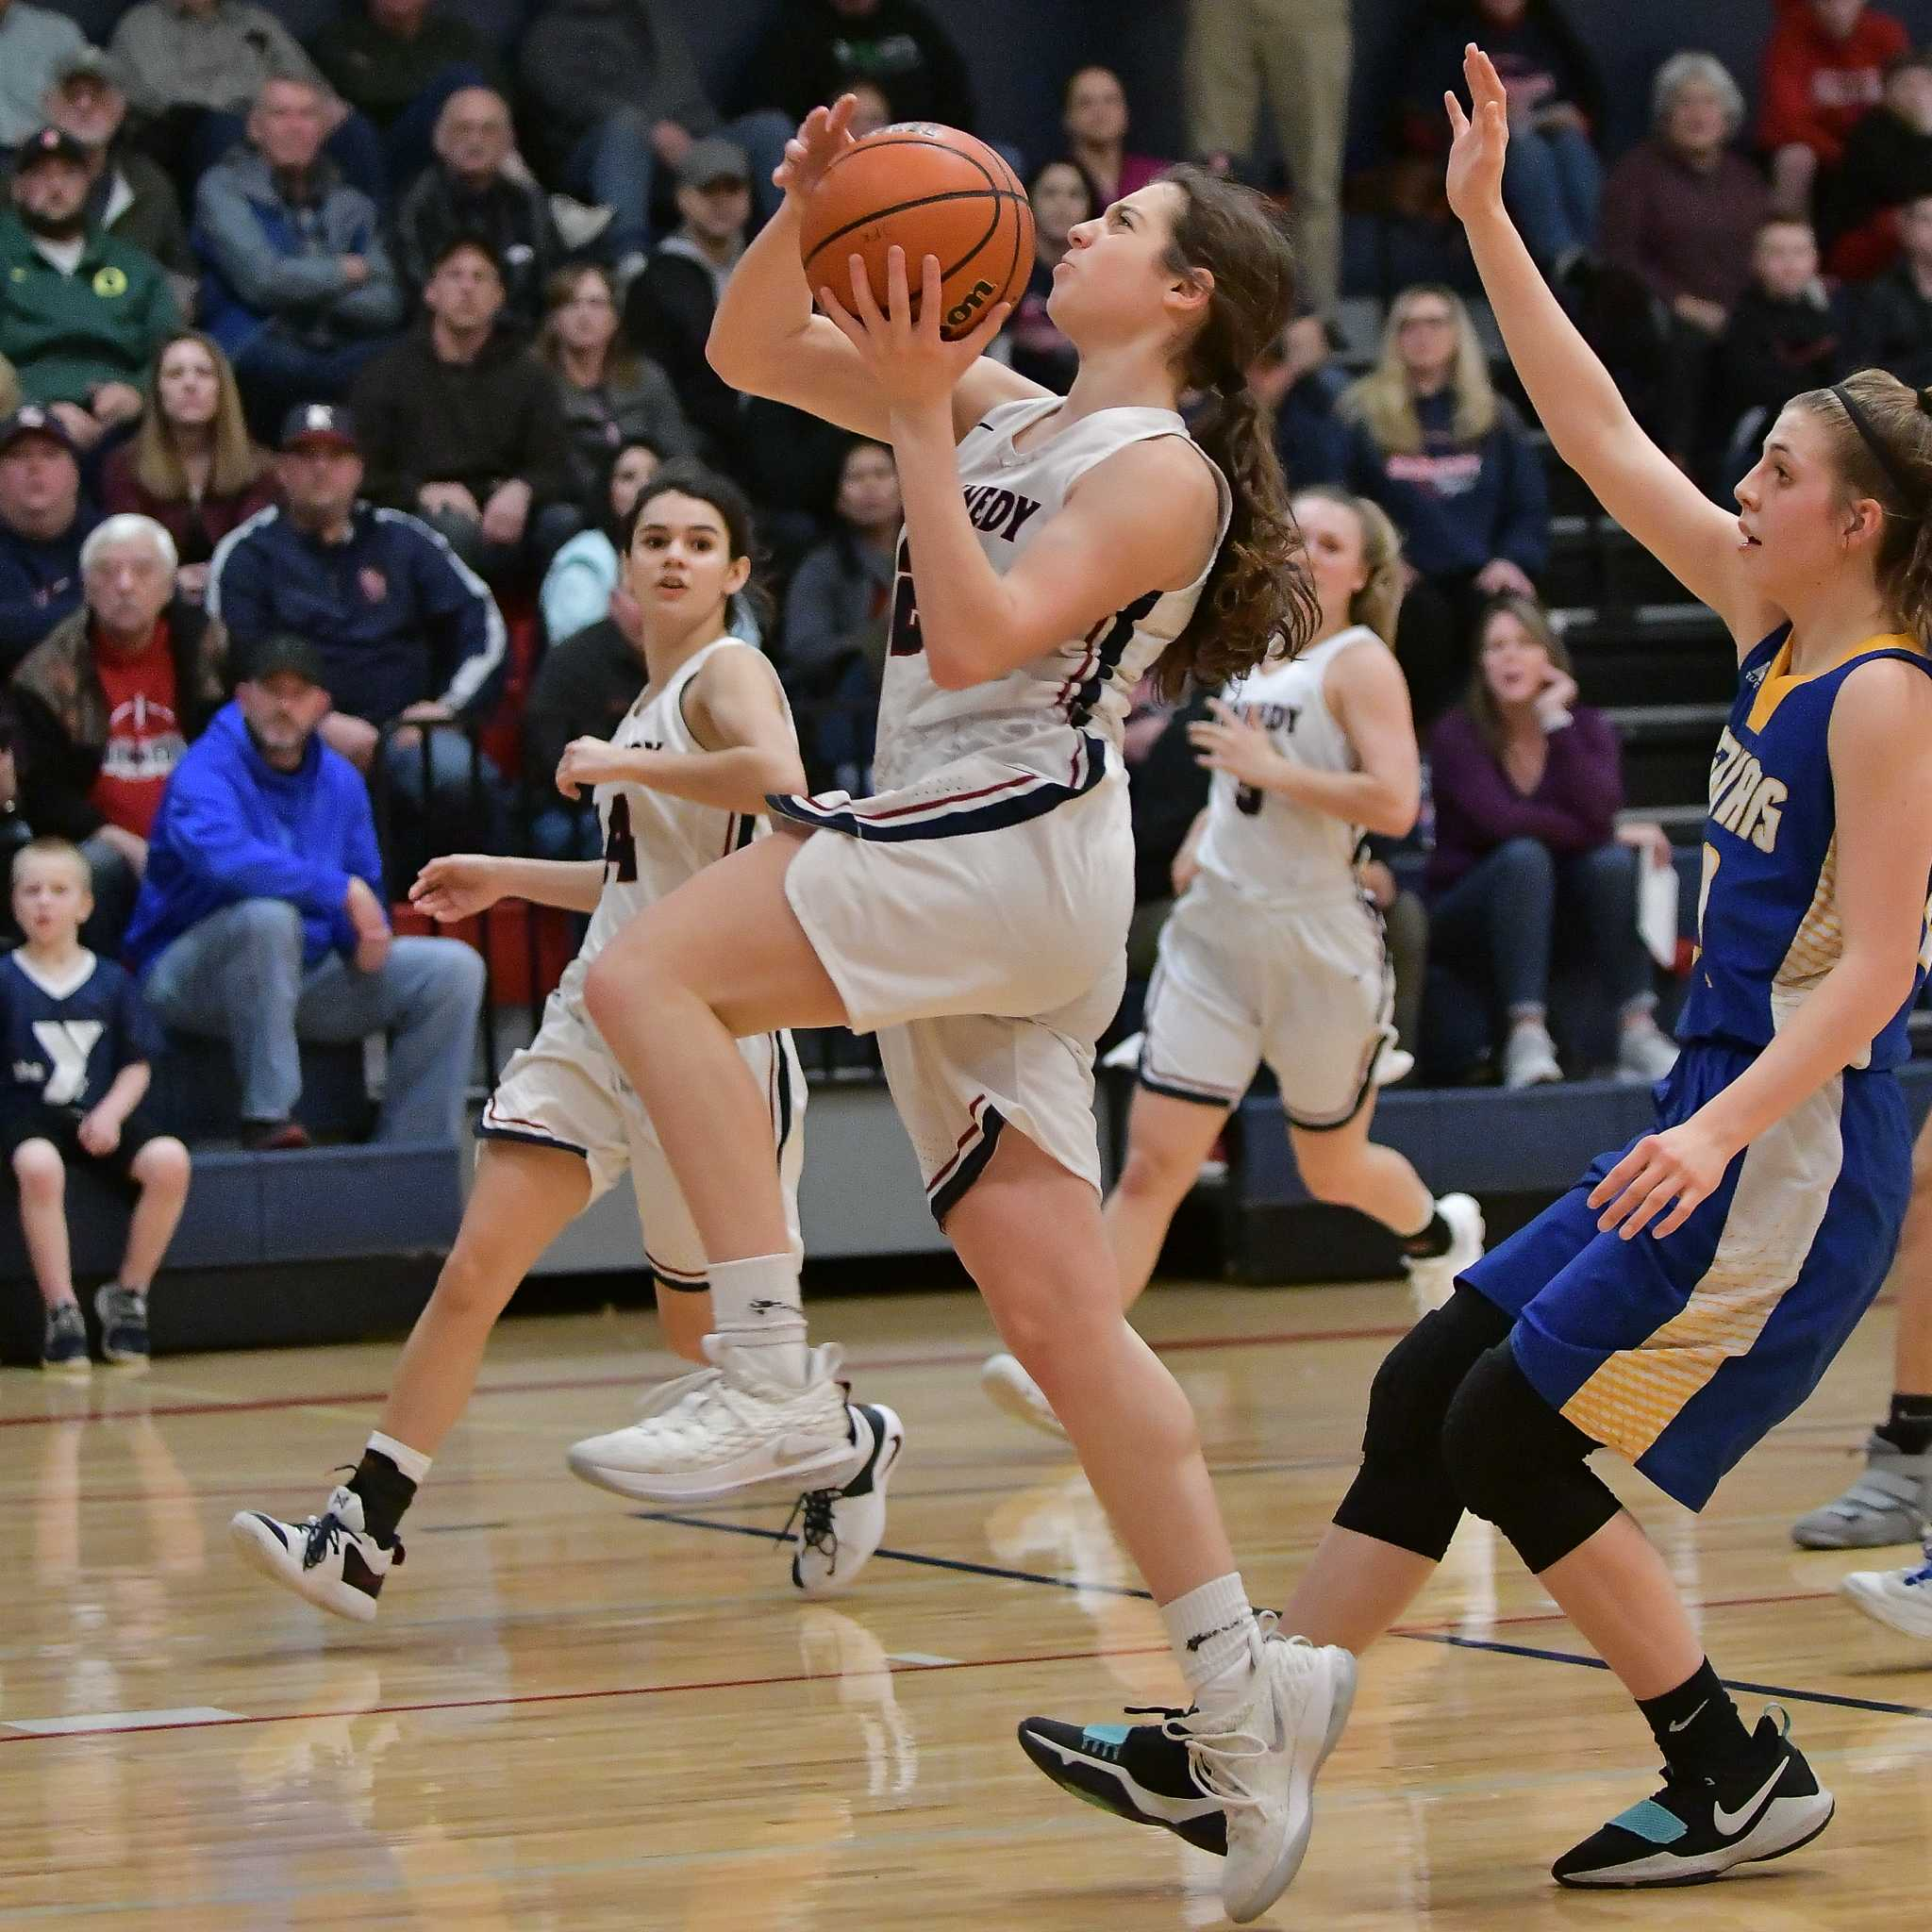 Kennedy's Ellie Cantu scored 13 points in Saturday's win over Gervais. (Photo by Andre Panse)